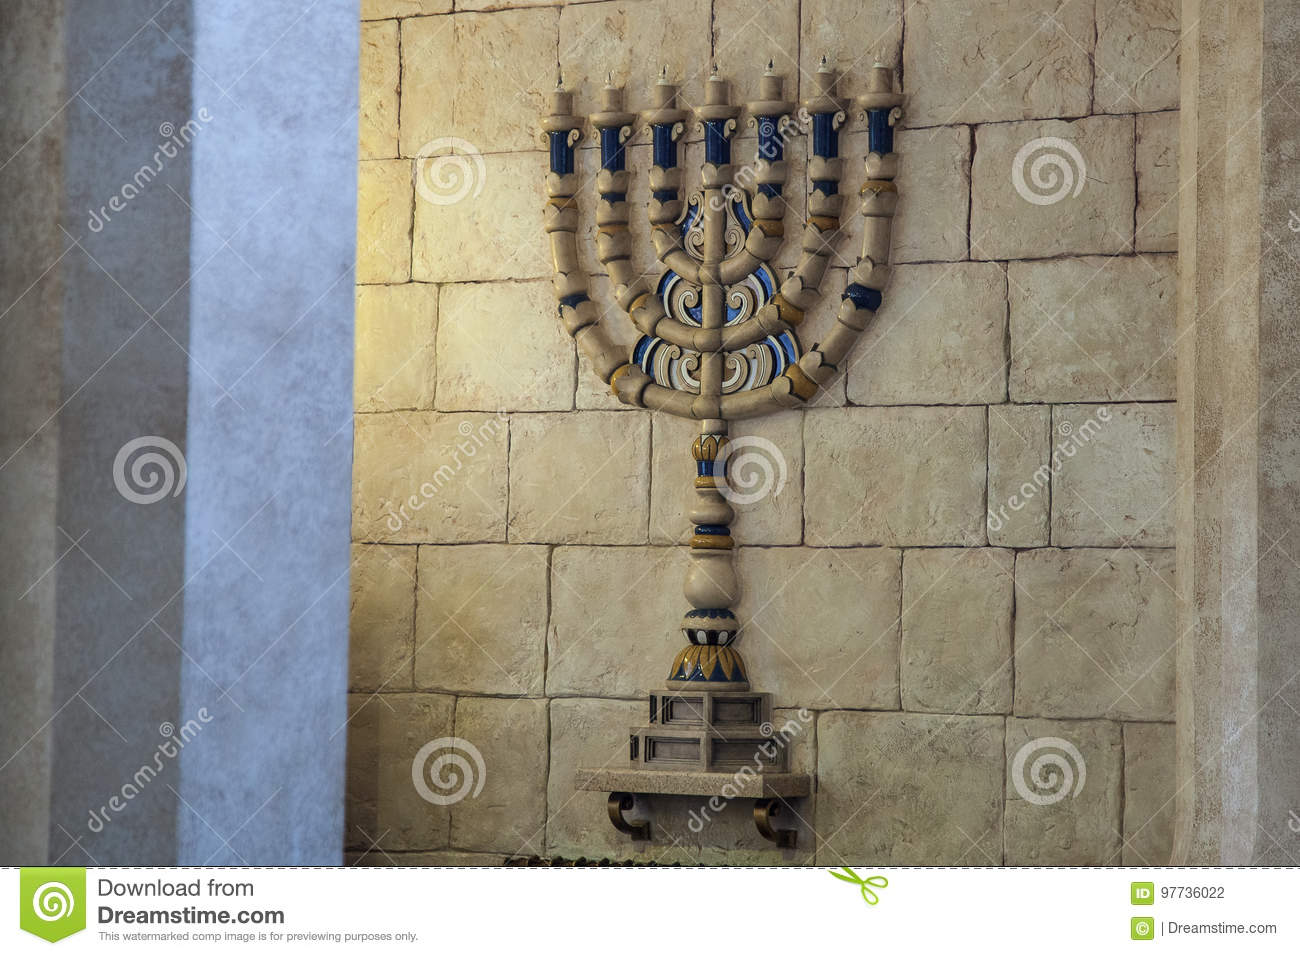 The menorah candlestick in the Synagogue